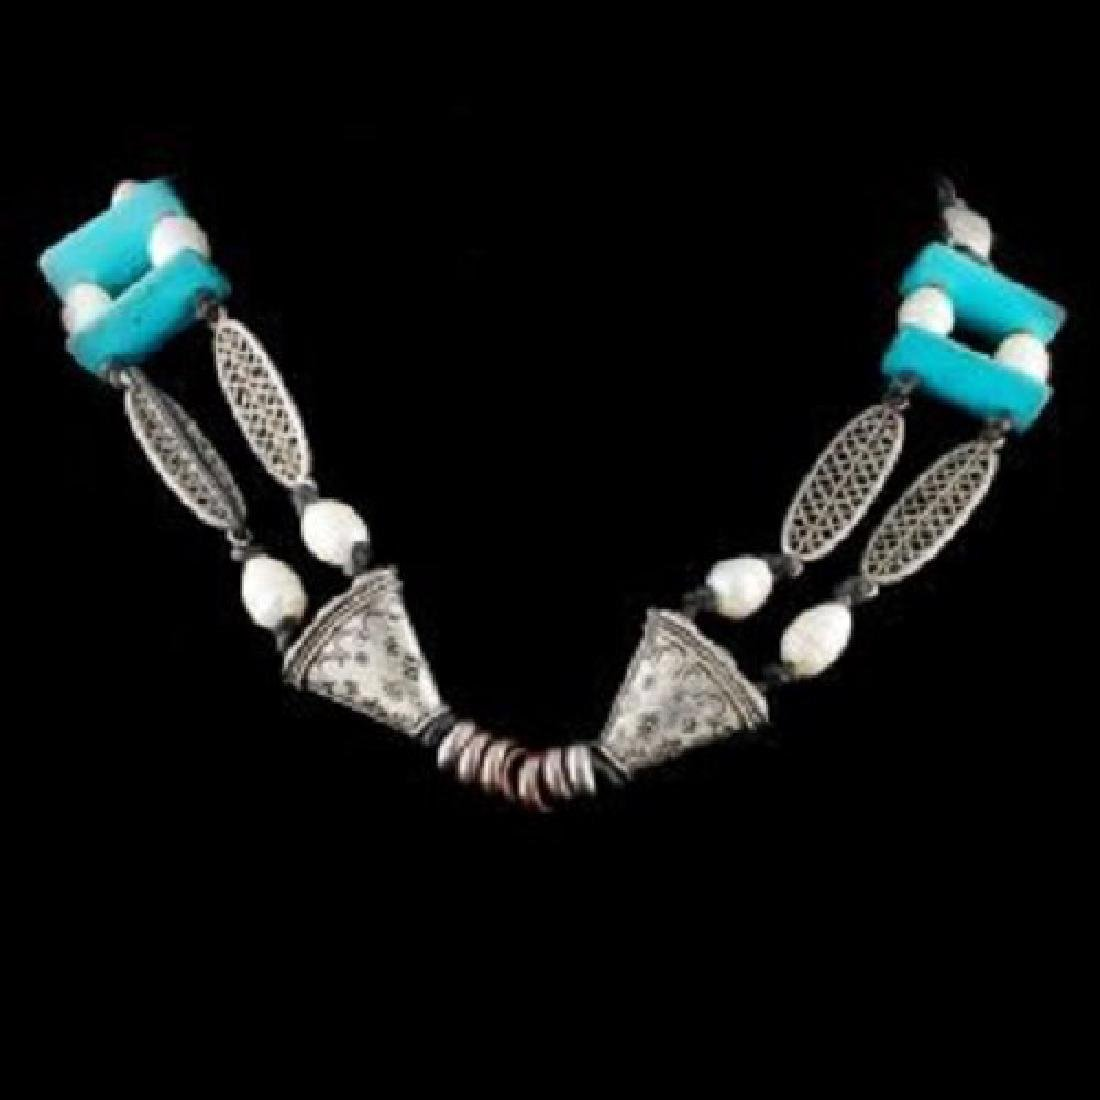 Tibet Silver Pearls and Turquoise Necklace